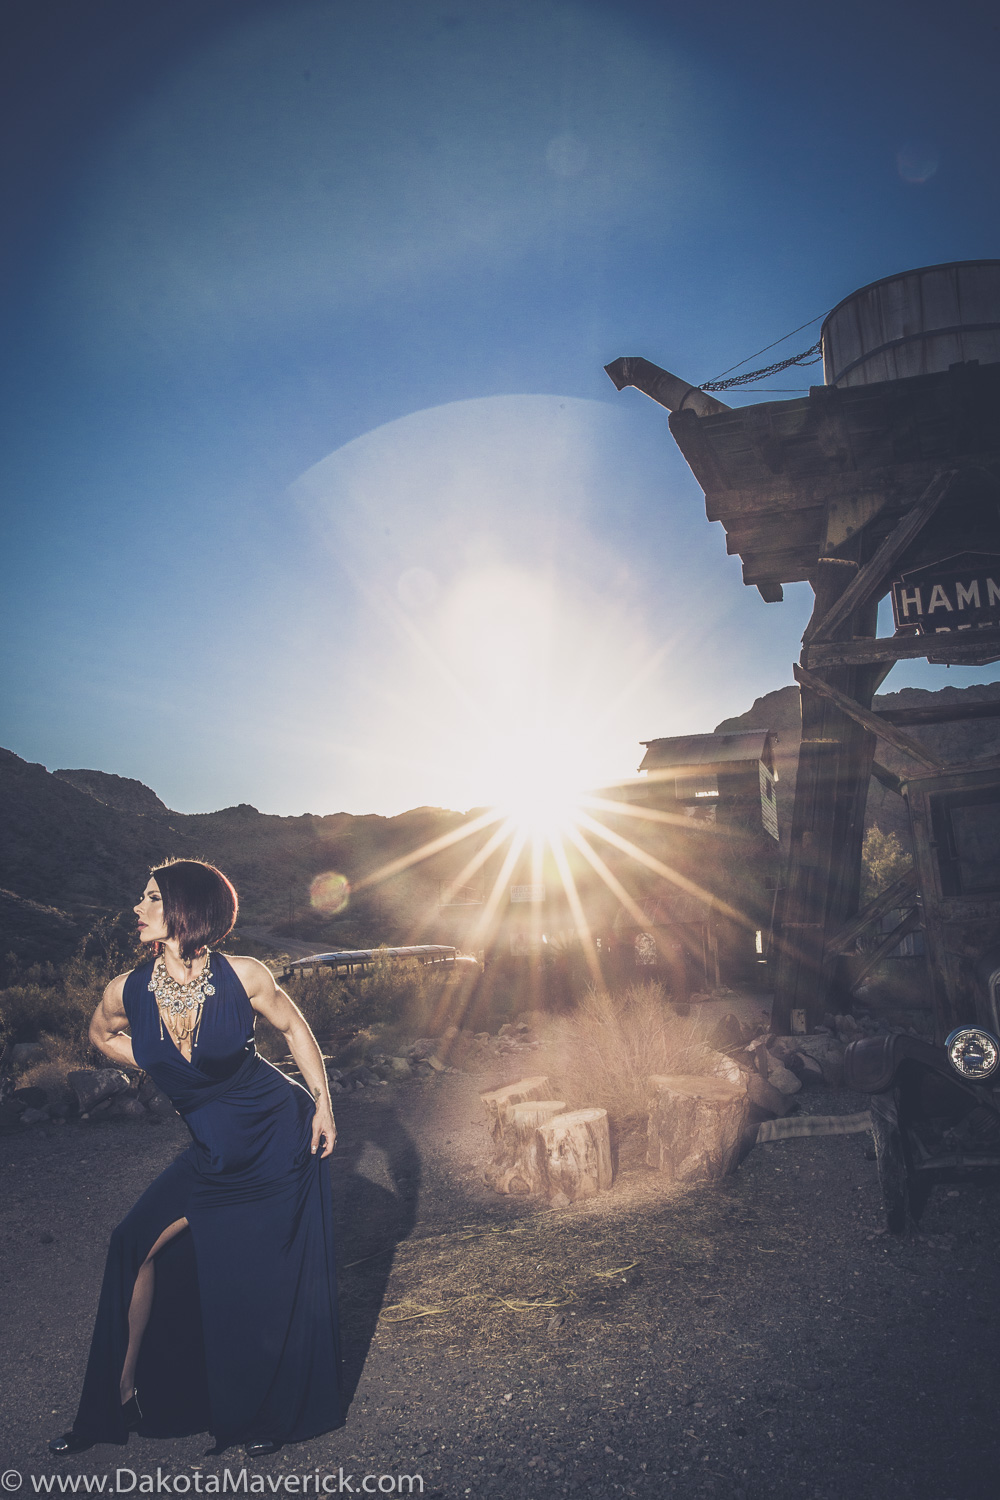 Vancouver Fitness Photographer - Nelson Ghost Town, Nevada - Fashion Fitness Shoot (3 of 40).jpg